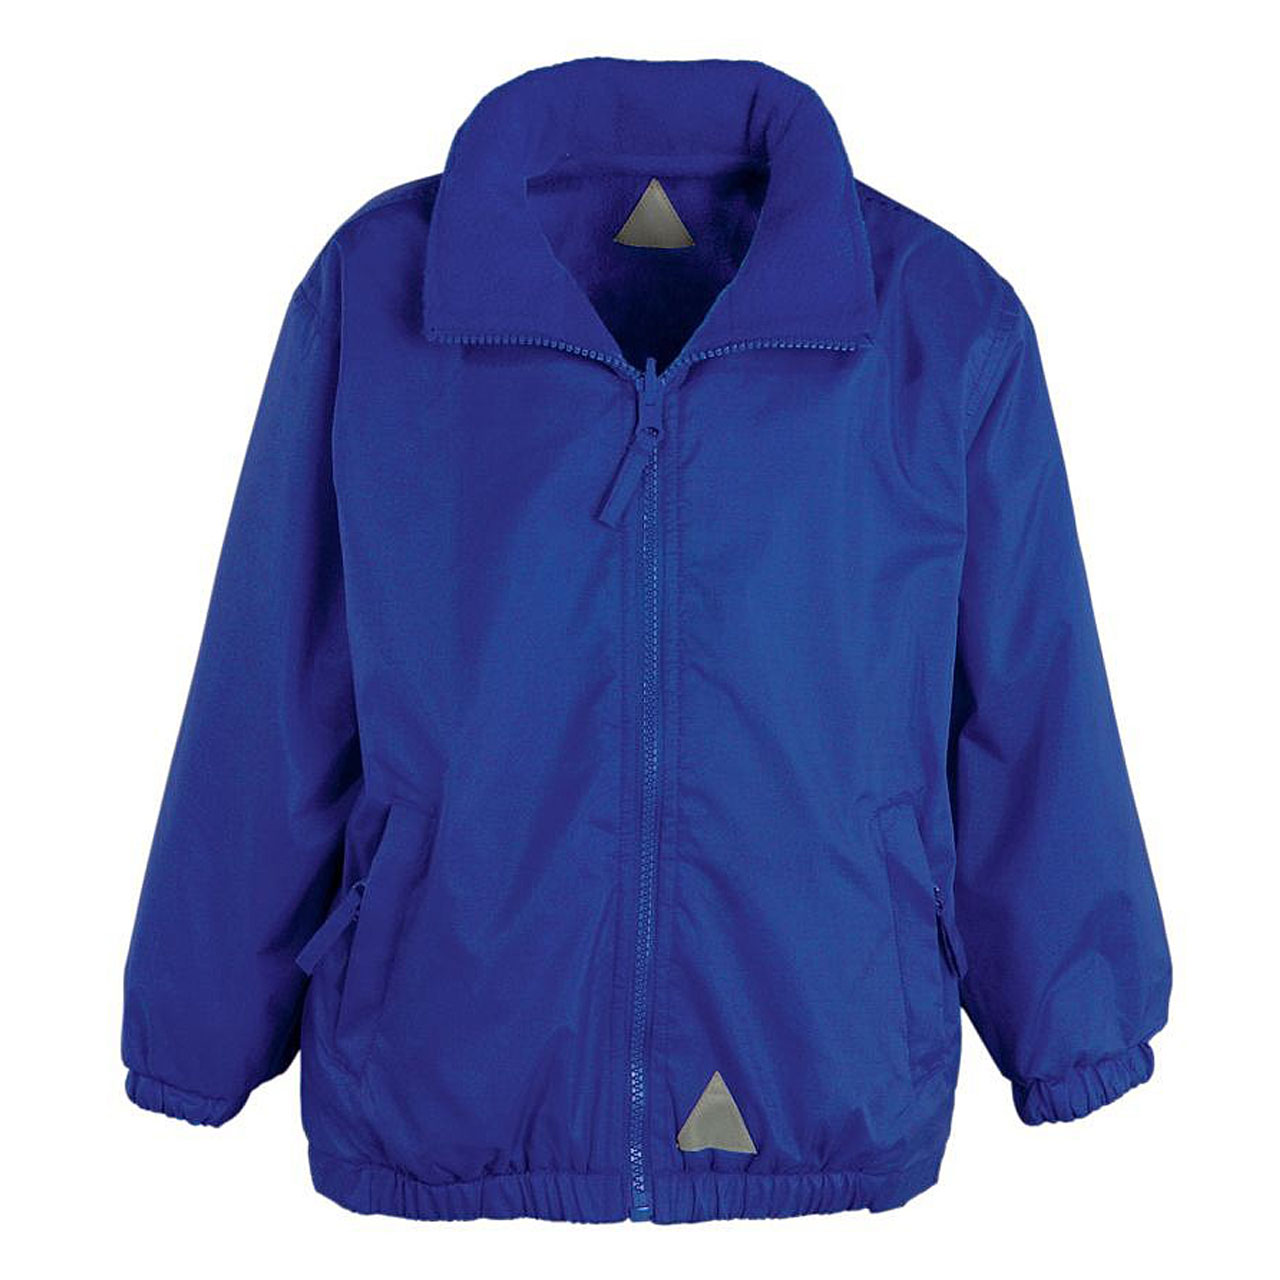 Embroidered School Reversible Mistral Jackets from Jageto Embroidery and Print in Braintree Essex in the UK